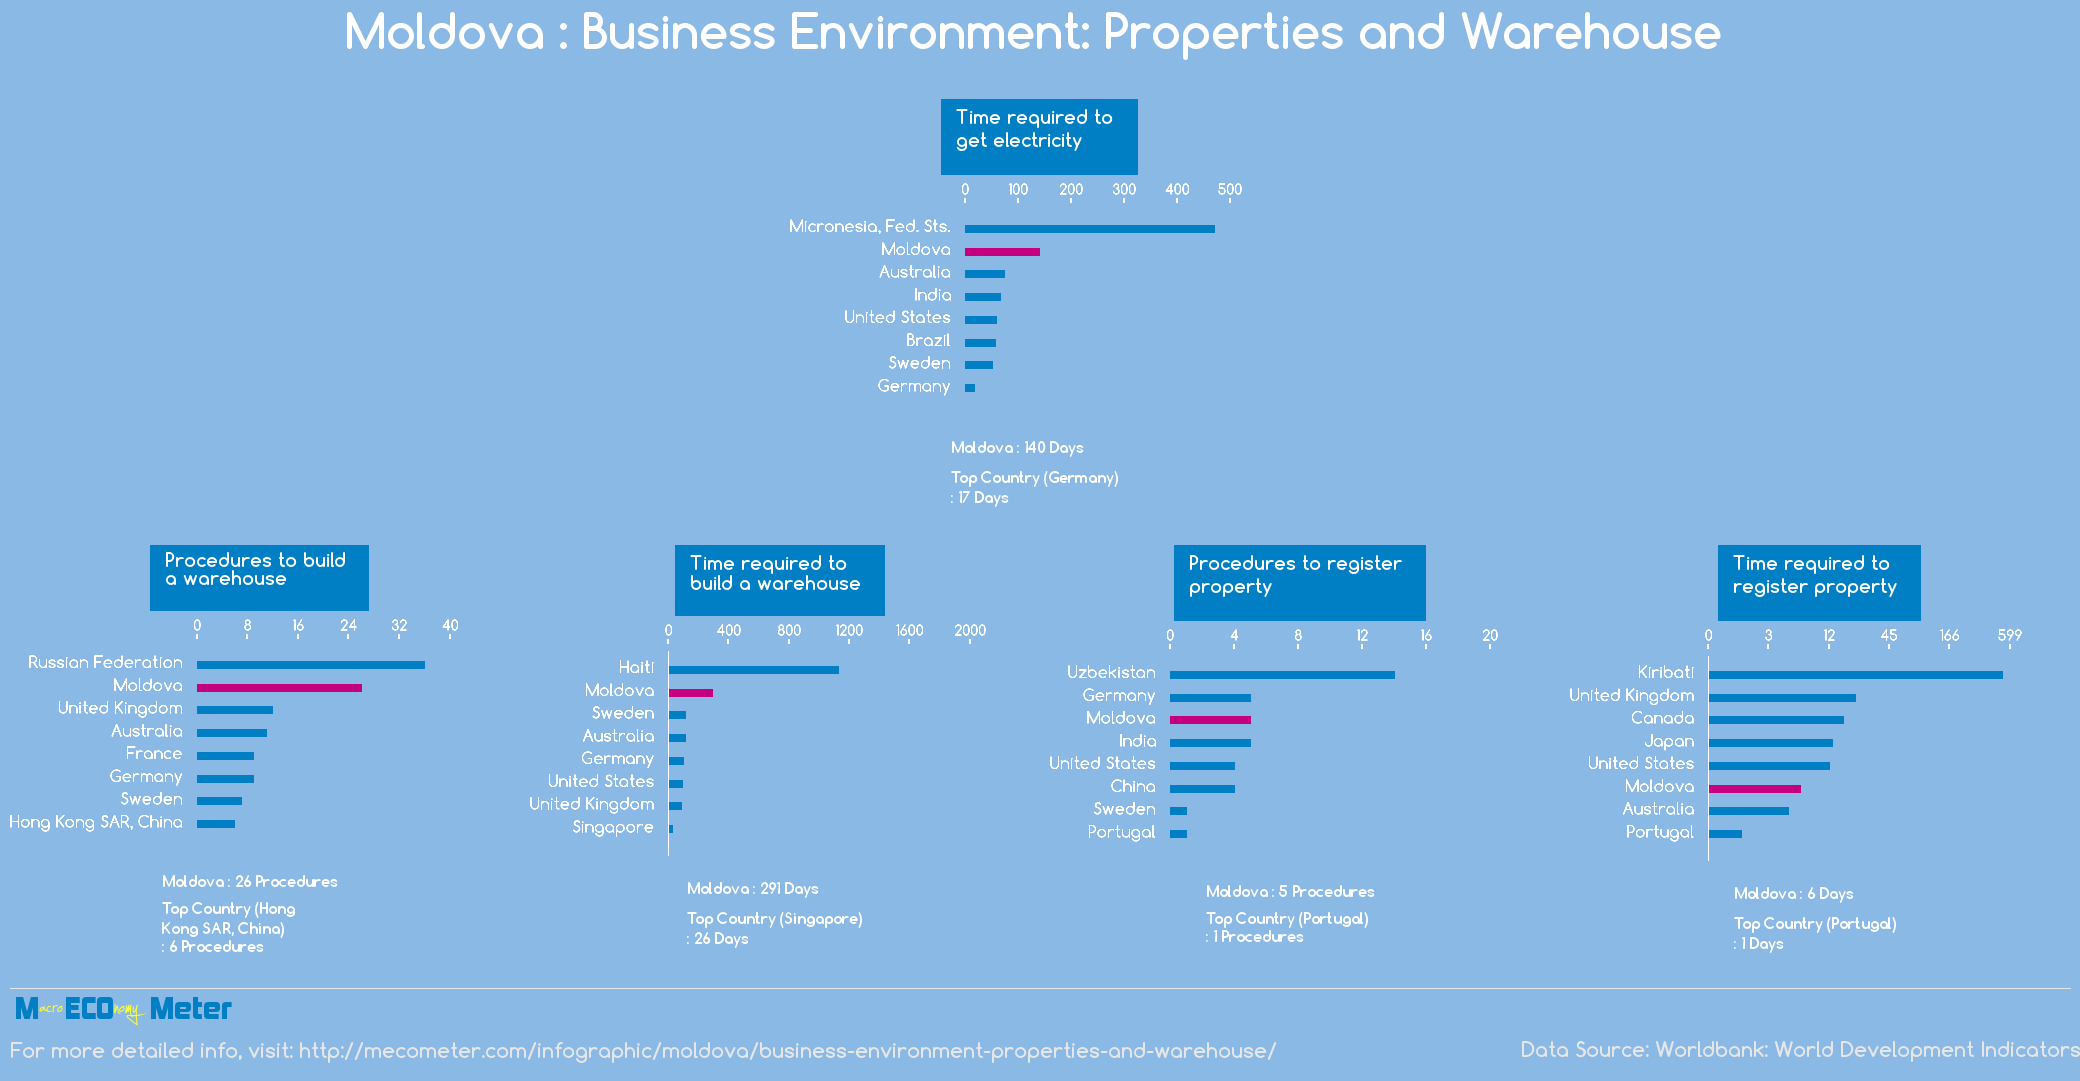 Moldova : Business Environment: Properties and Warehouse